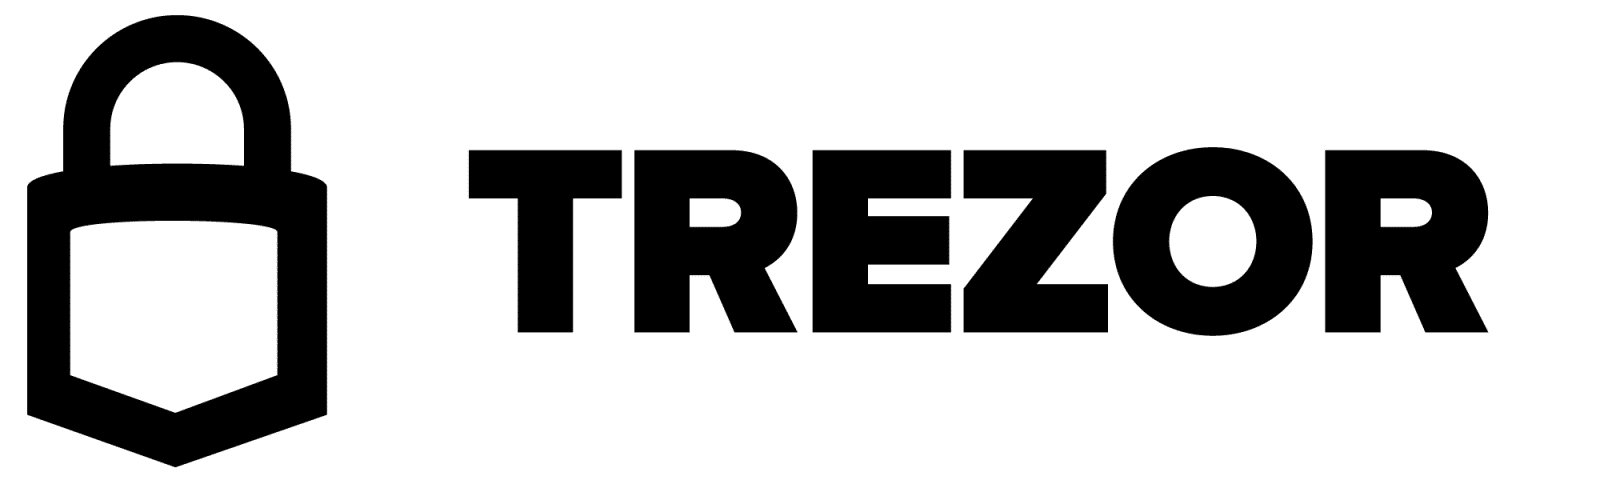 Best Hardware Wallets: Trezor